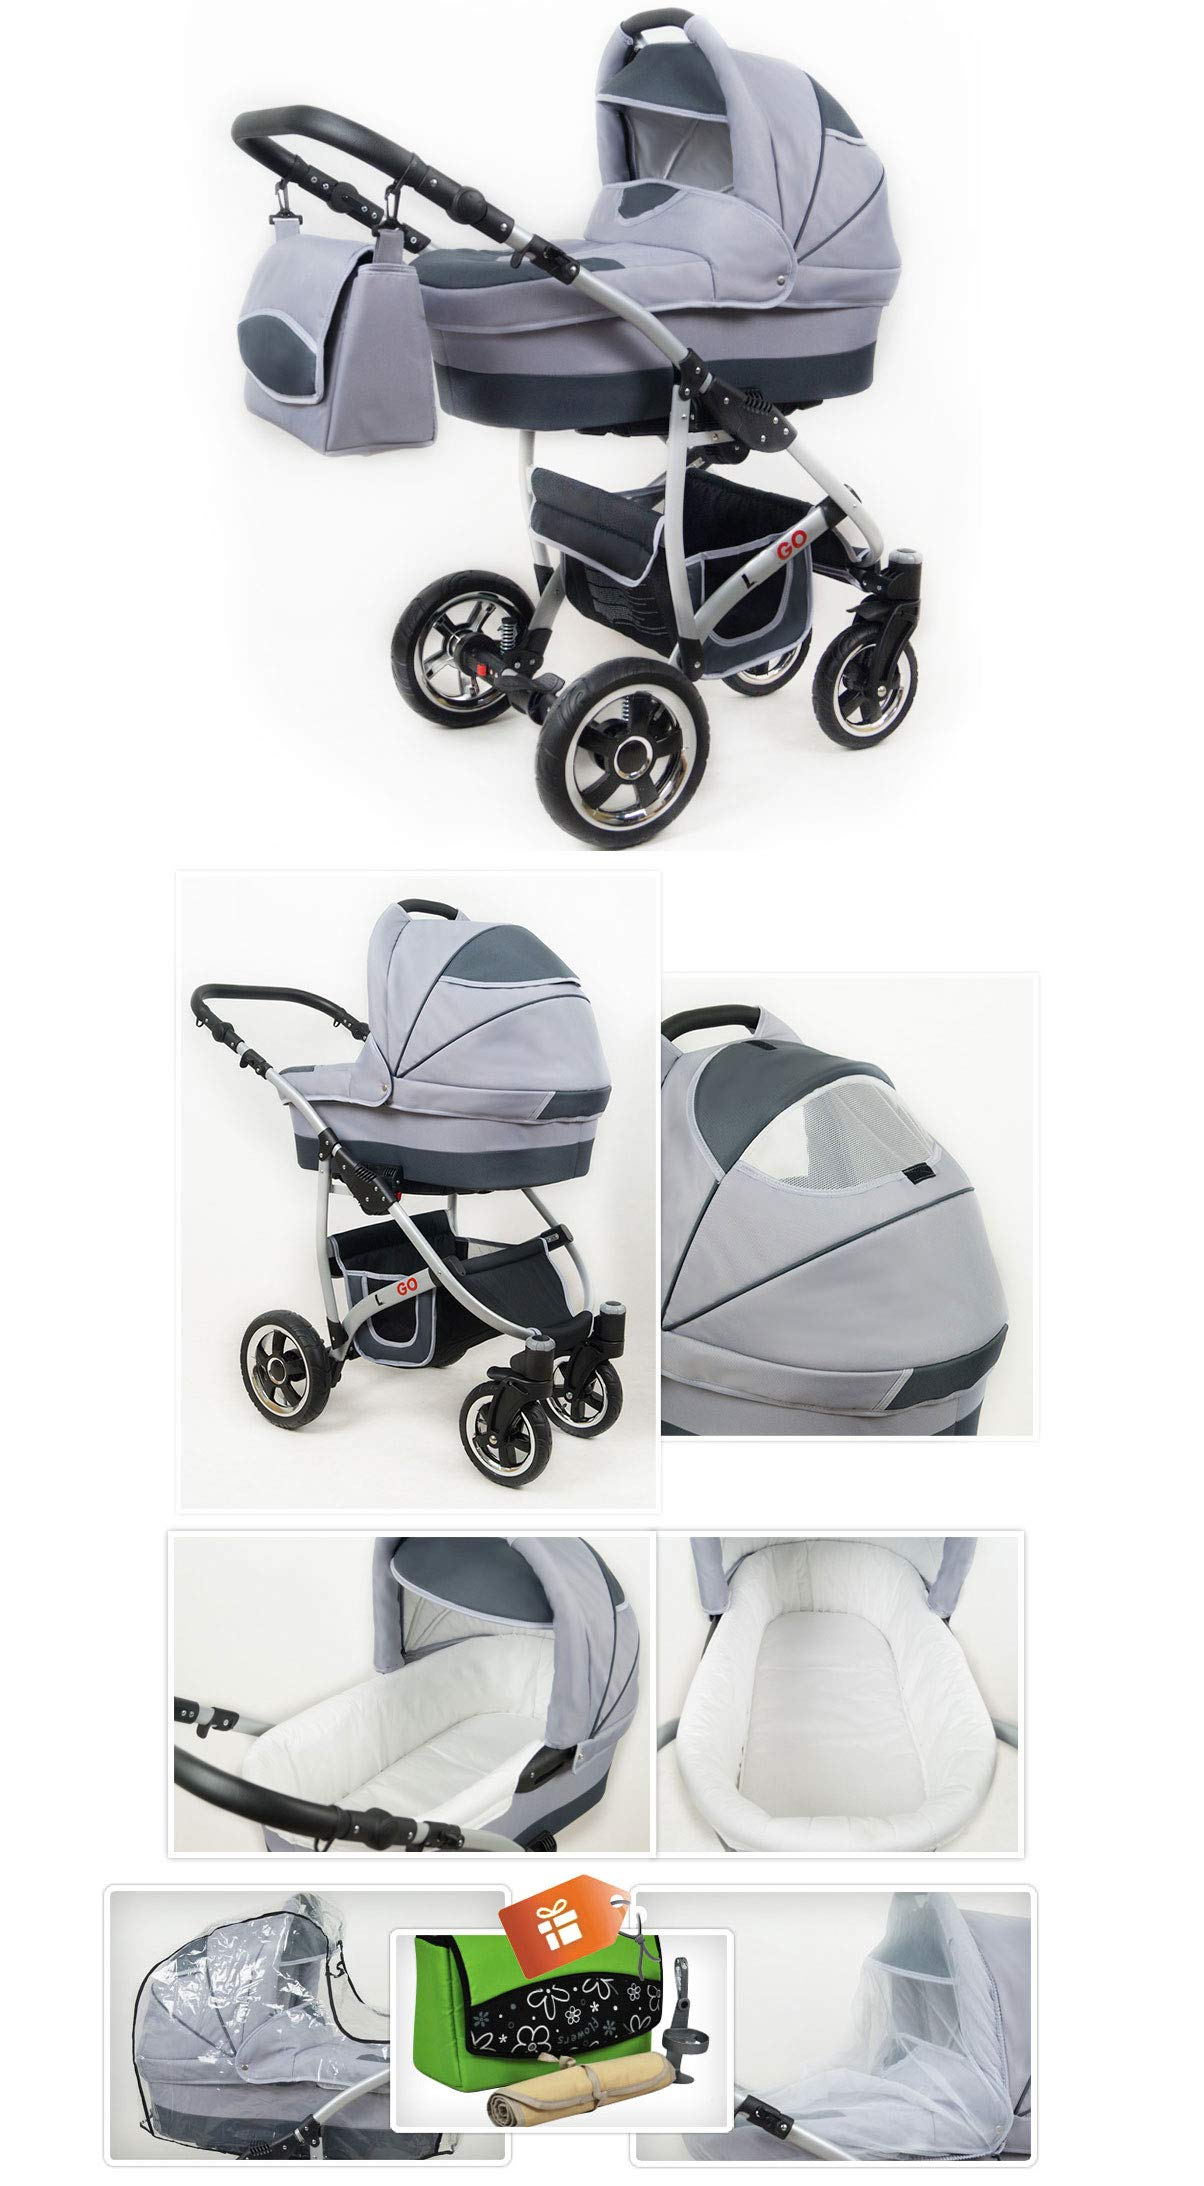 SaintBaby Stroller Pram 2in1 3in1 Set All in one Baby seat Buggy Pushchair New L-GO Black 3in1 with Baby seat SaintBaby 3in1 or 2in1 Selectable. At 3in1 you will also receive the car seat (baby seat). Of course you get the baby tub (classic pram) as well as the buggy attachment (sports seat) no matter if 2in1 or 3in1. The car naturally complies with the EU safety standard EN1888. During production and before shipment, each wagon is carefully inspected so that you can be sure you have one of the best wagons. Saintbaby stands for all-in-one carefree packages, so you will also receive a diaper bag in the same colour as the car as well as rain and insect protection free of charge. With all the colours of this pram you will find the pram of your dreams. 4